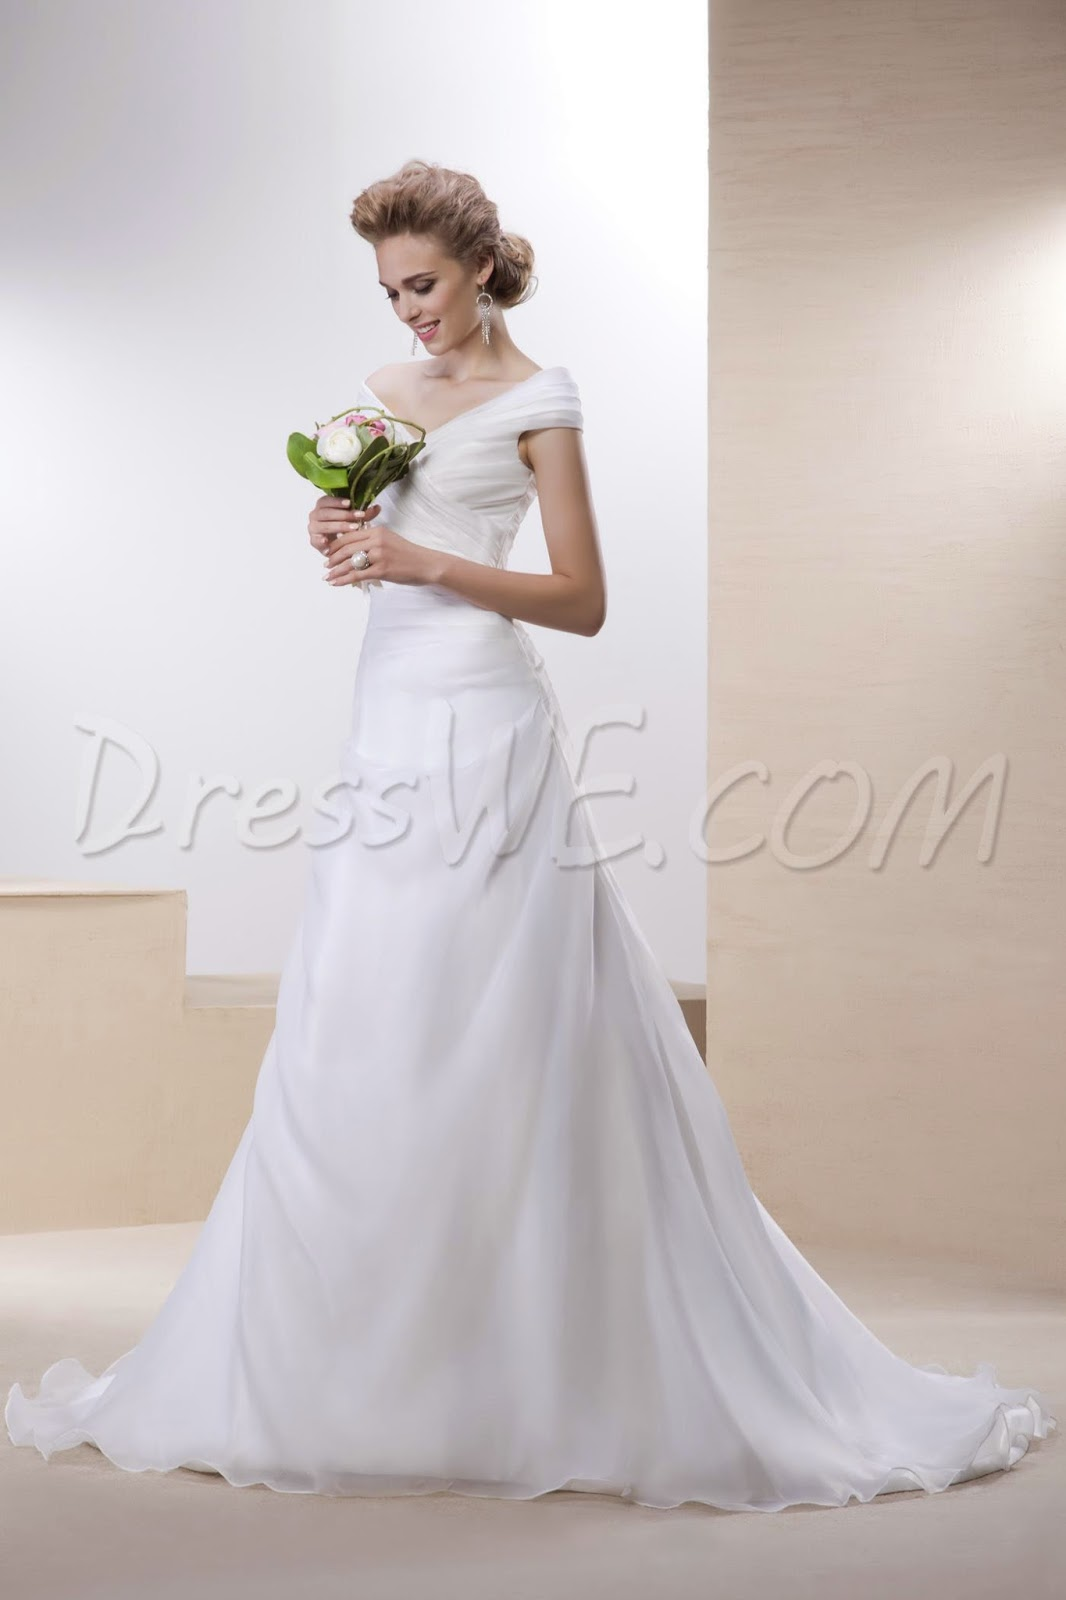 Dresswe 2014 Cheap wedding dresses online promotion | Teen to 30 ...